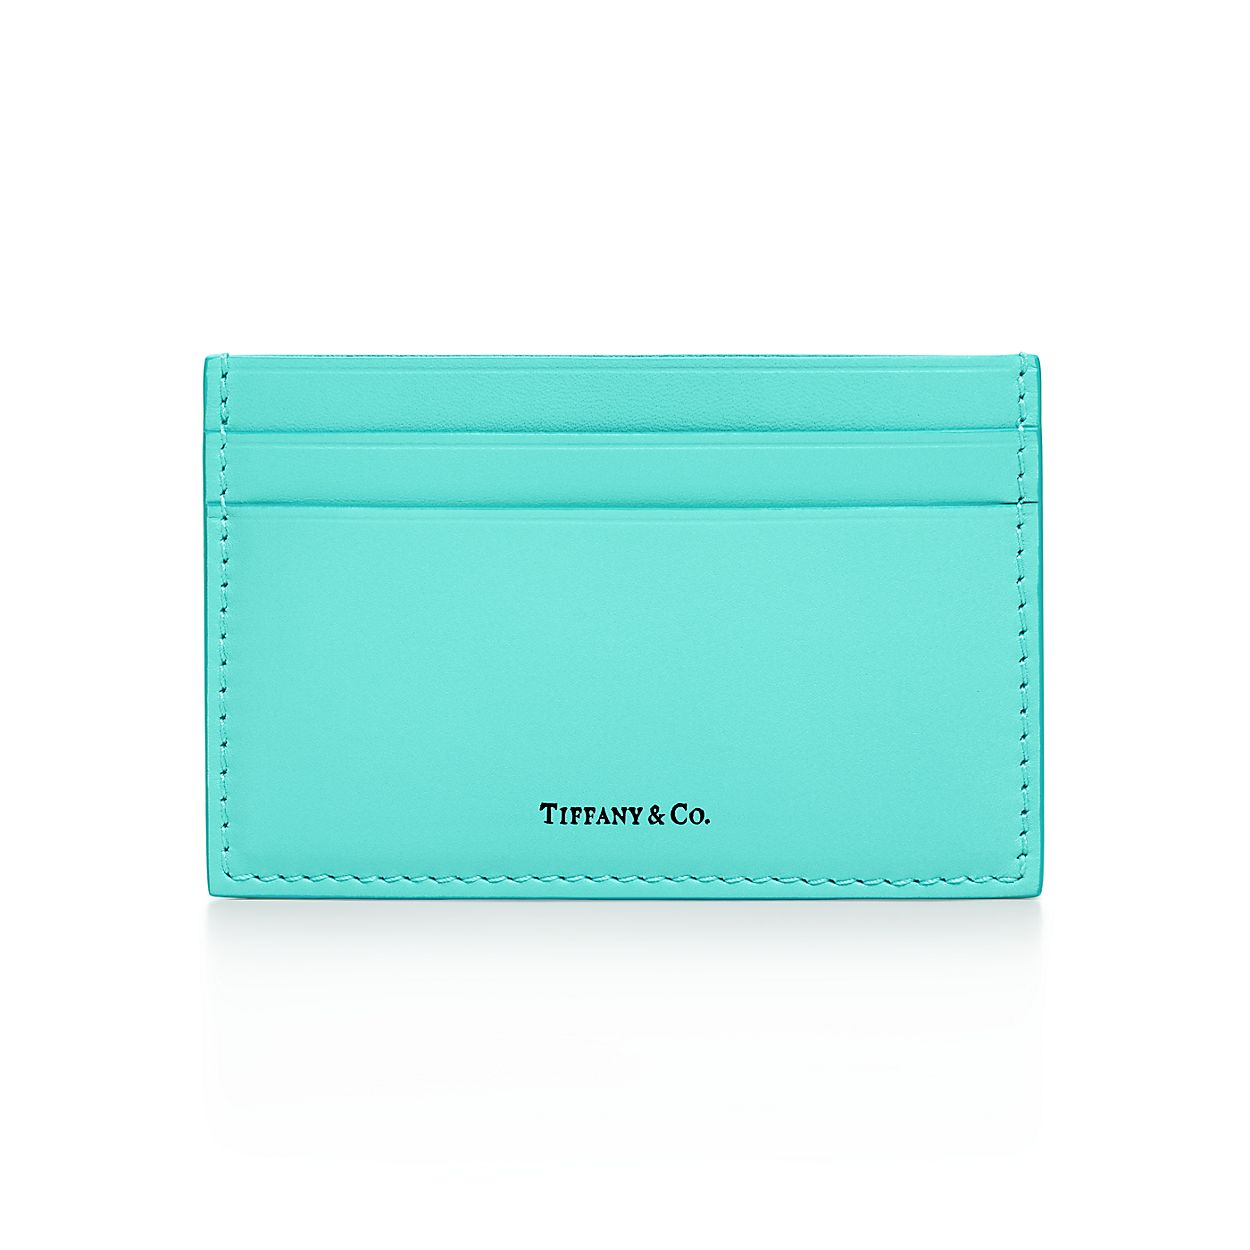 Card case in Tiffany Blue® smooth calfskin leather. | Tiffany & Co.